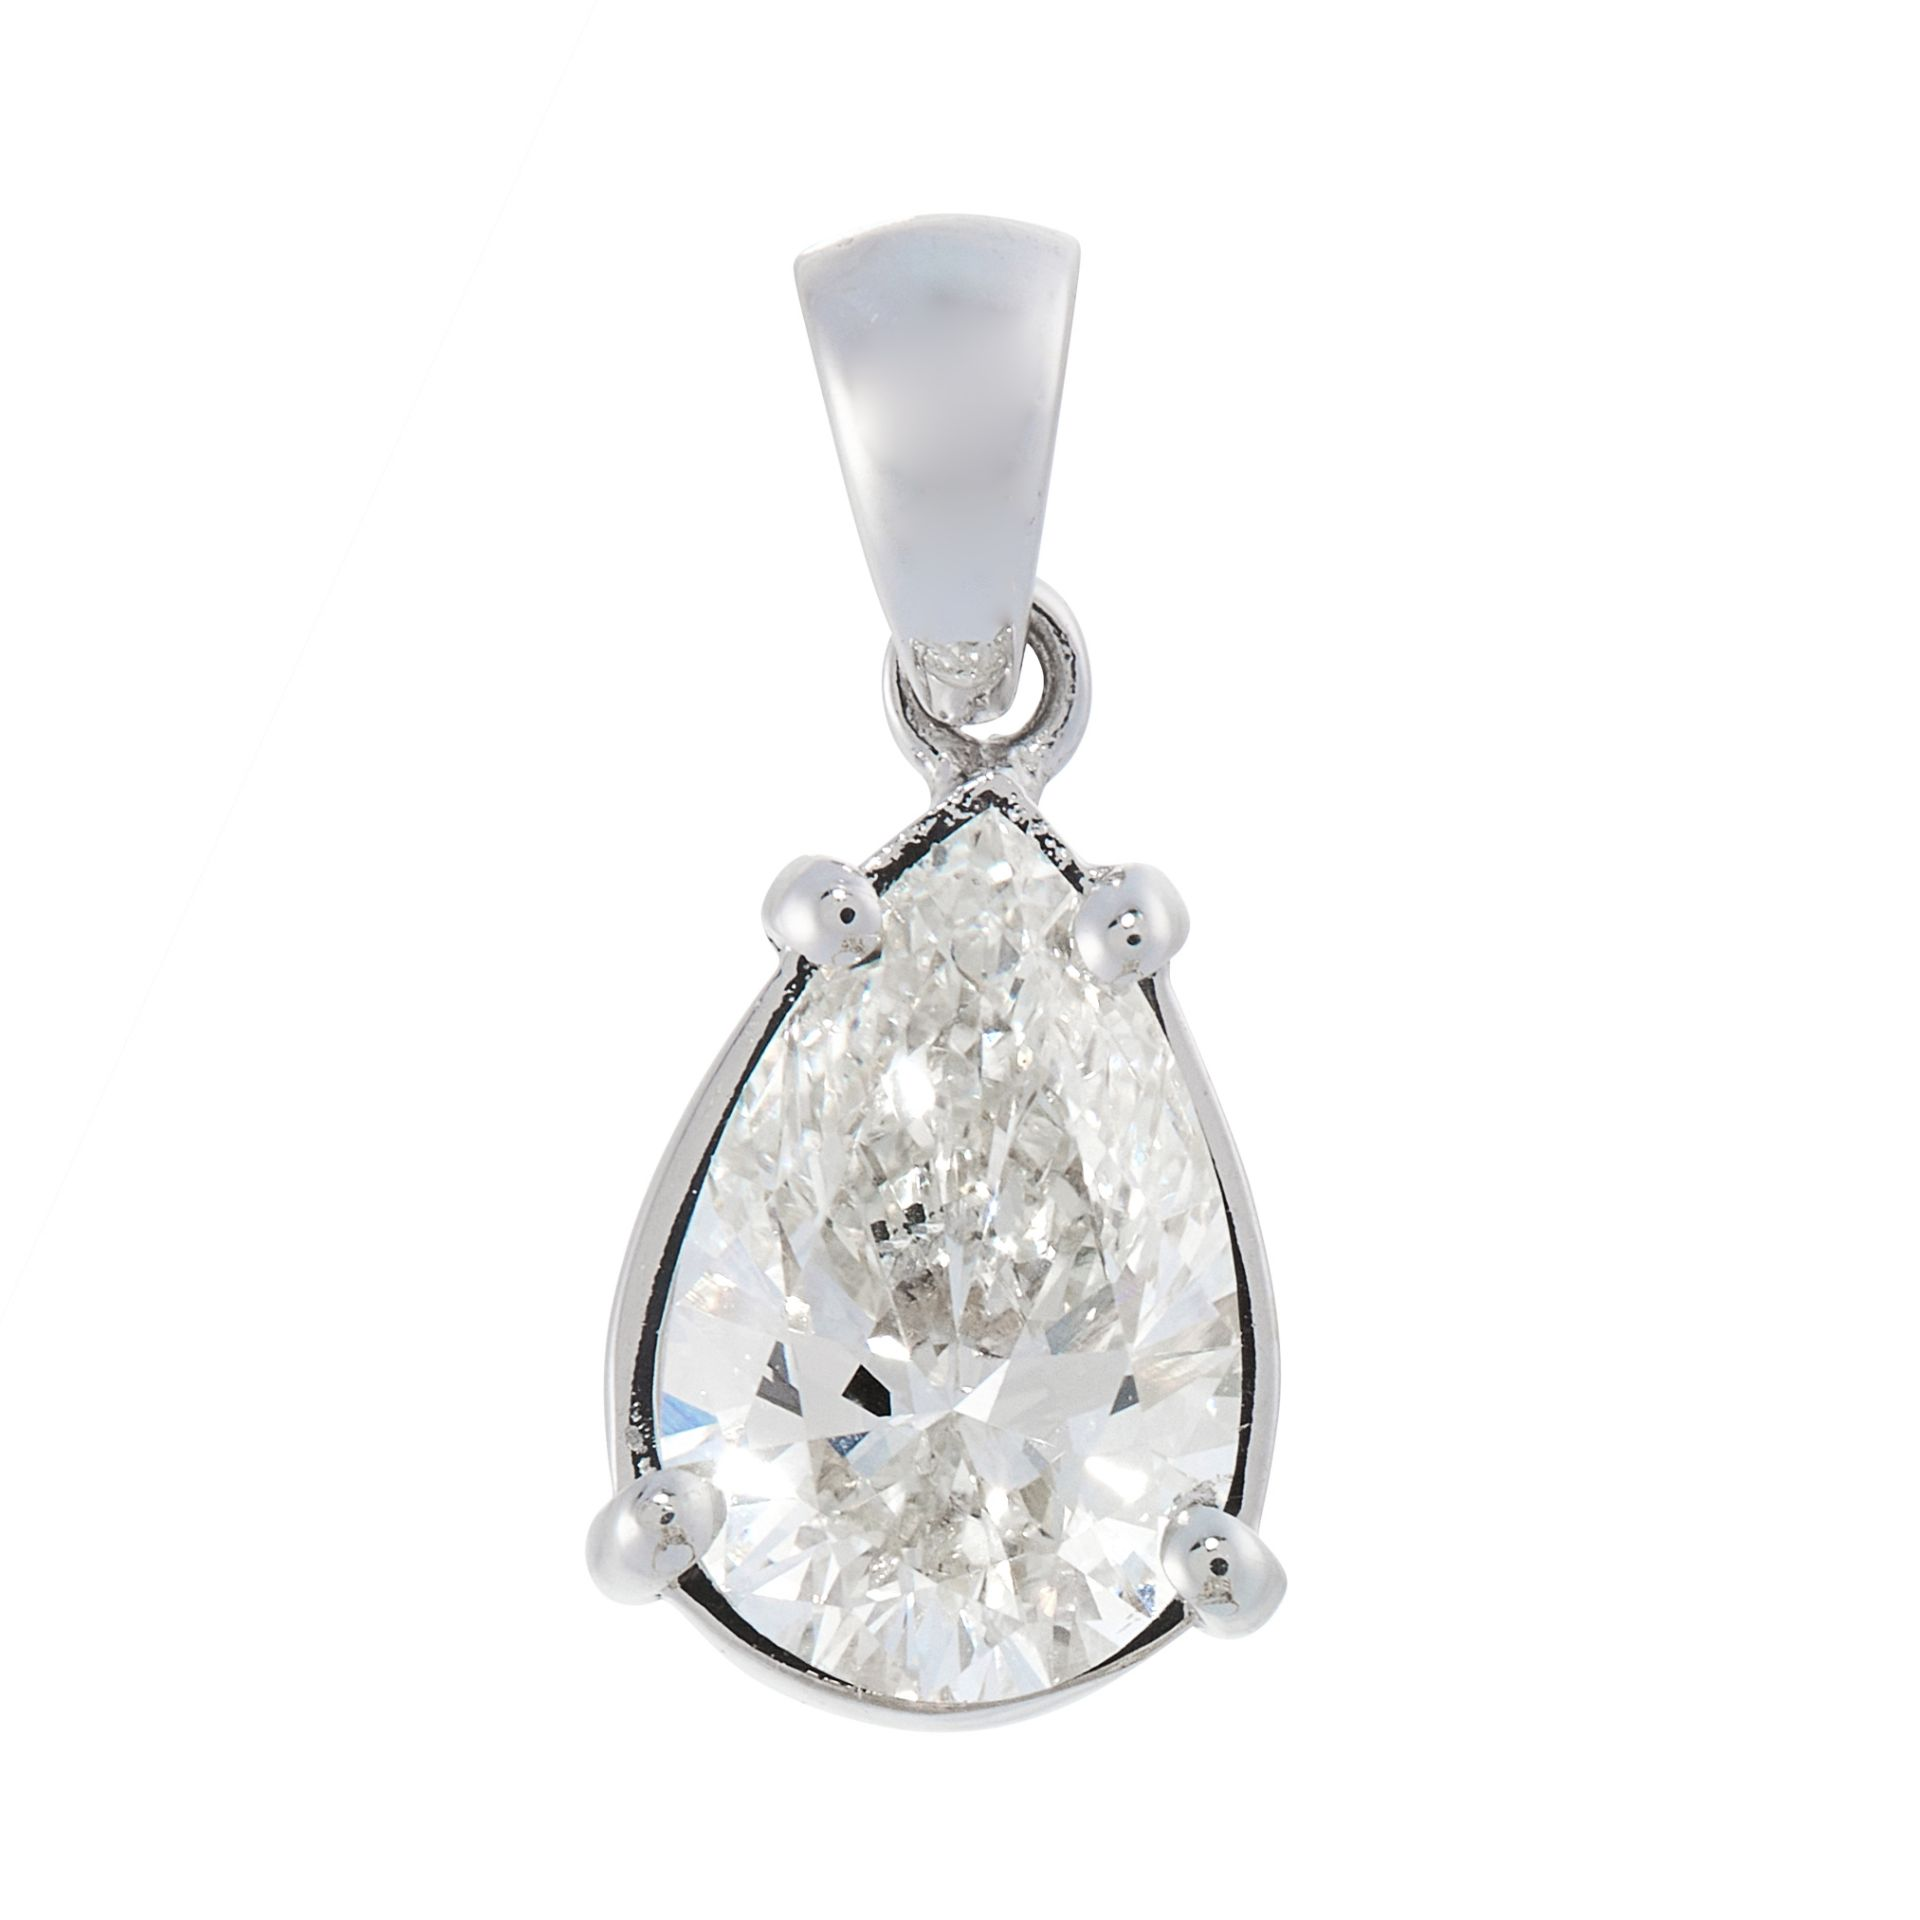 A SOLITAIRE DIAMOND PENDANT in 18ct white gold, set with a pear shaped brilliant cut diamond of 1.10